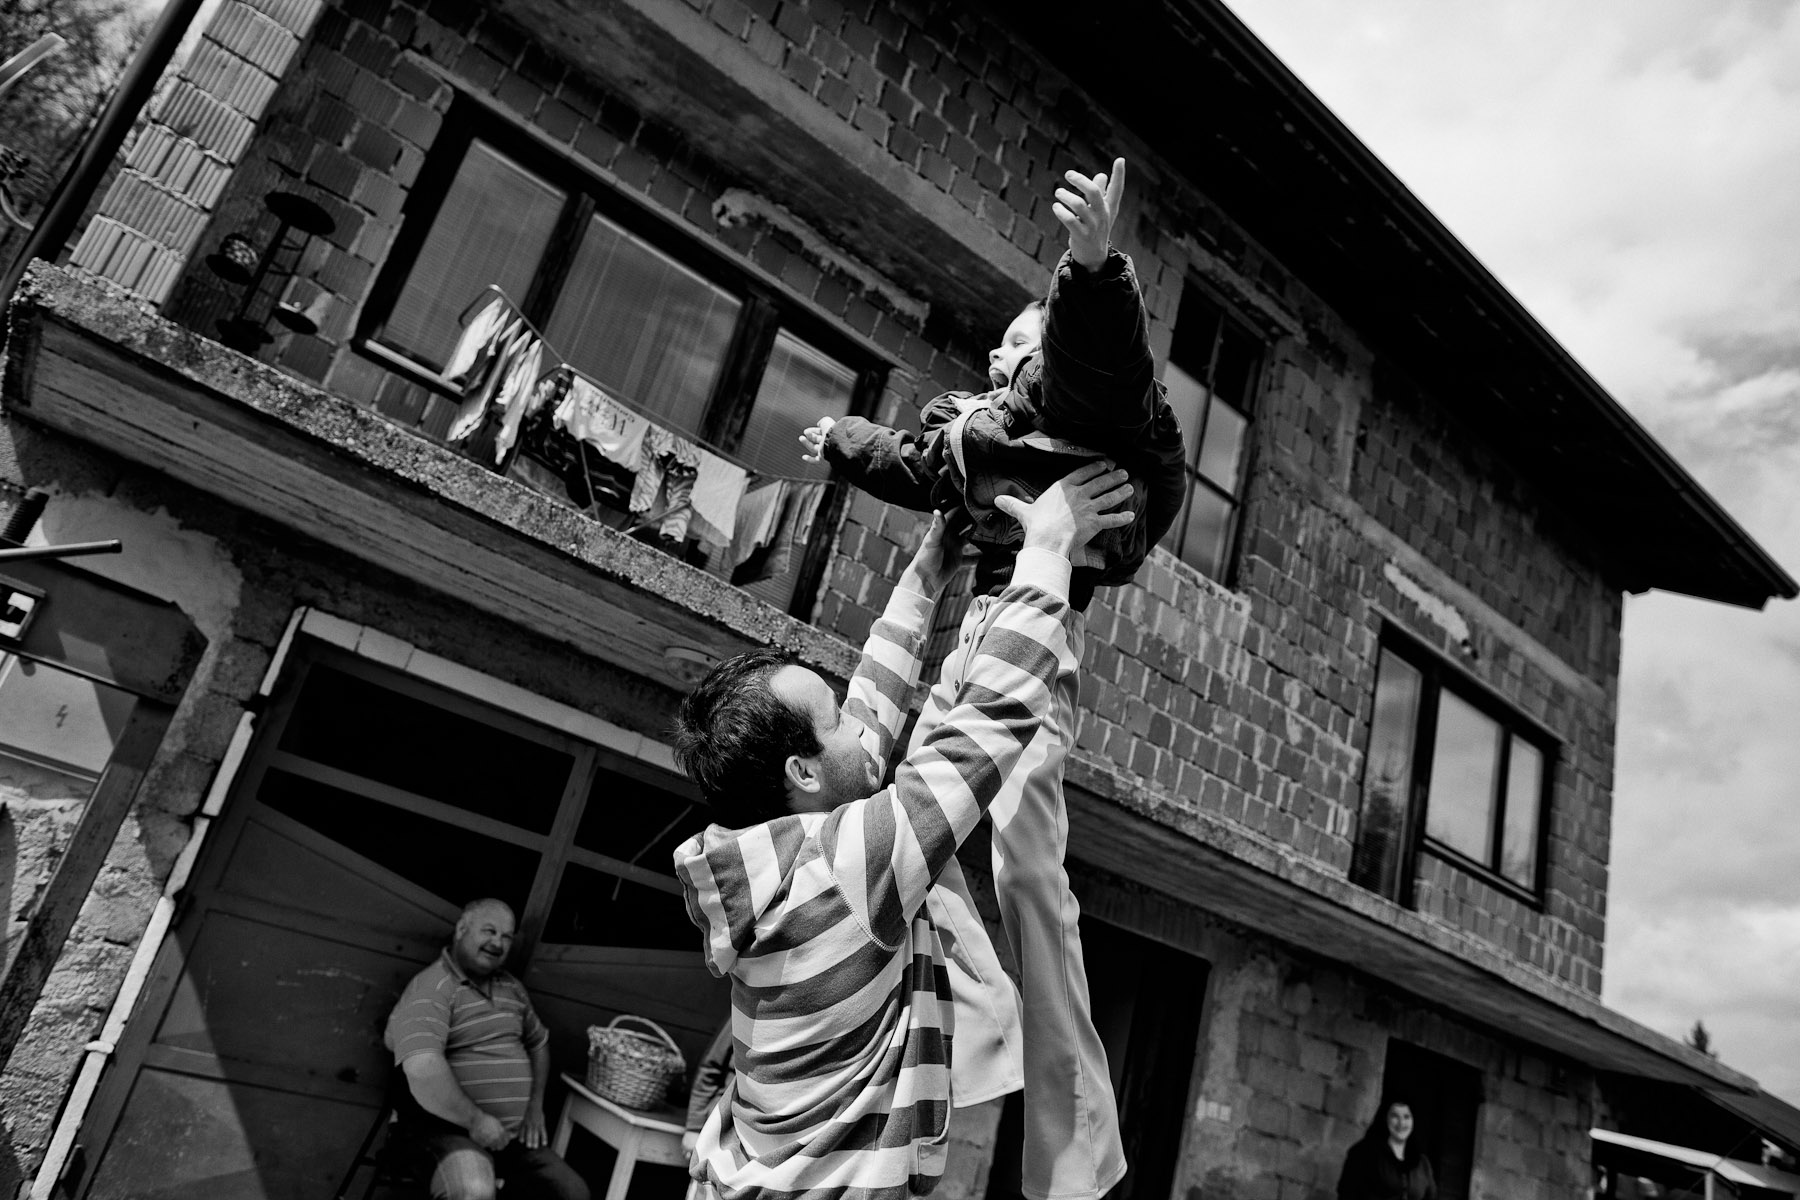 Barbara's brother Andrej throws Barbara in the air in a play Barbara loves a lot, in front of their house in Zavrc, Slovenia, April 7, 2012.